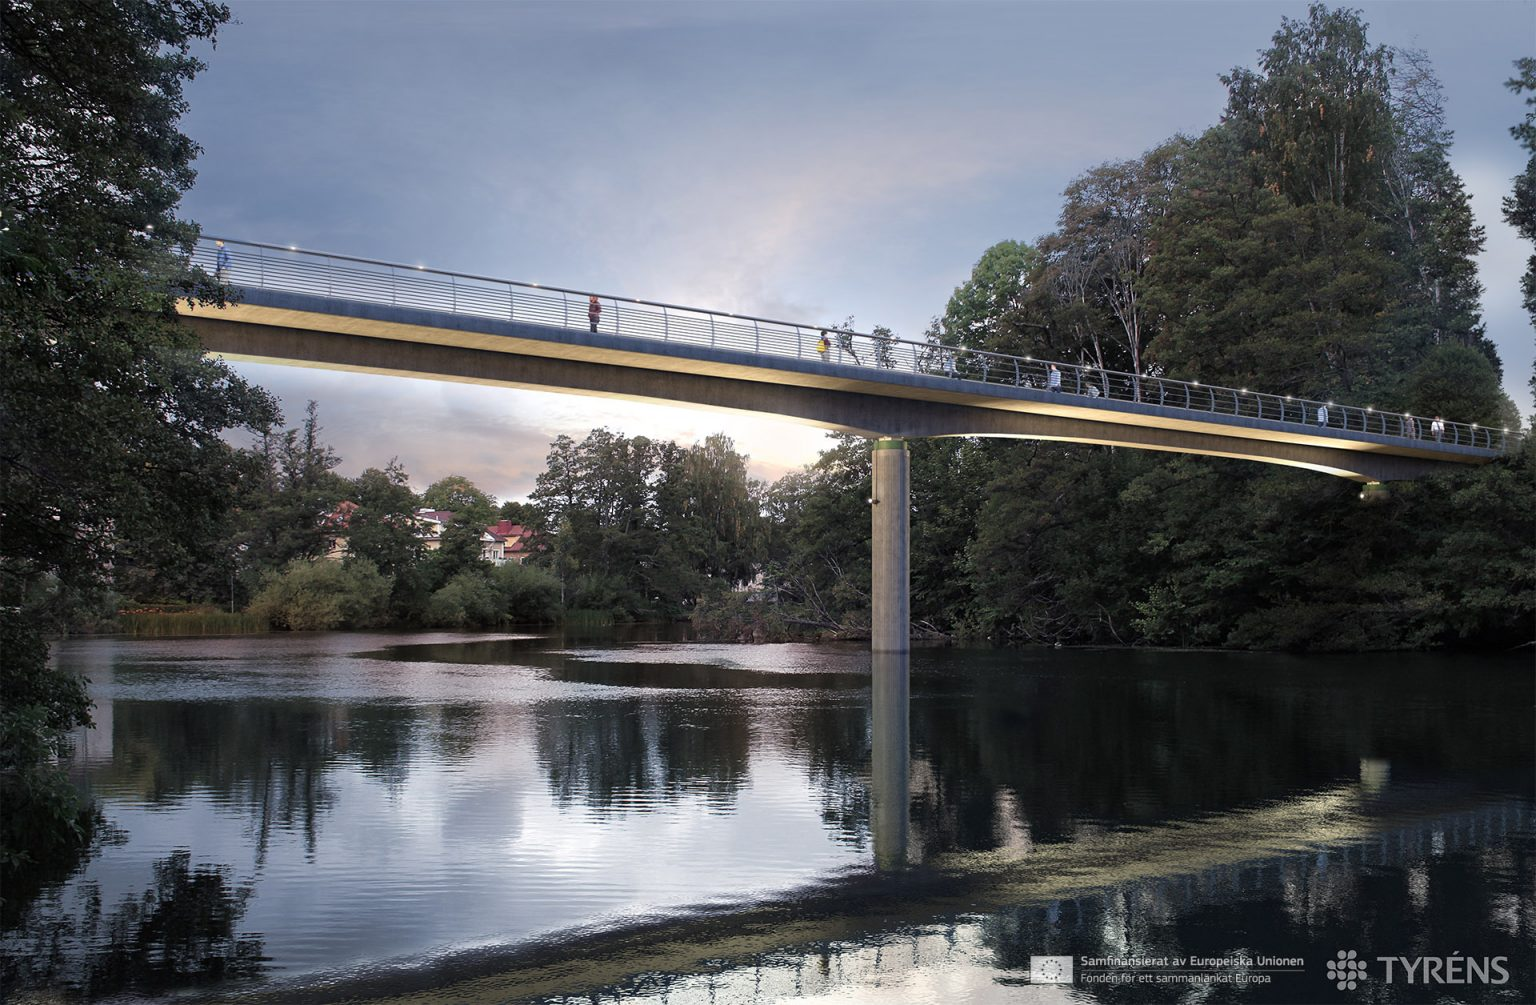 BRIDGE IN NORRKÖPING night 1 realistic 3D visualization architecture CGI high-end top quality lity DGE IN NORRKÖPING 1 realistic 3D visualization architecture CGI high-end top quality